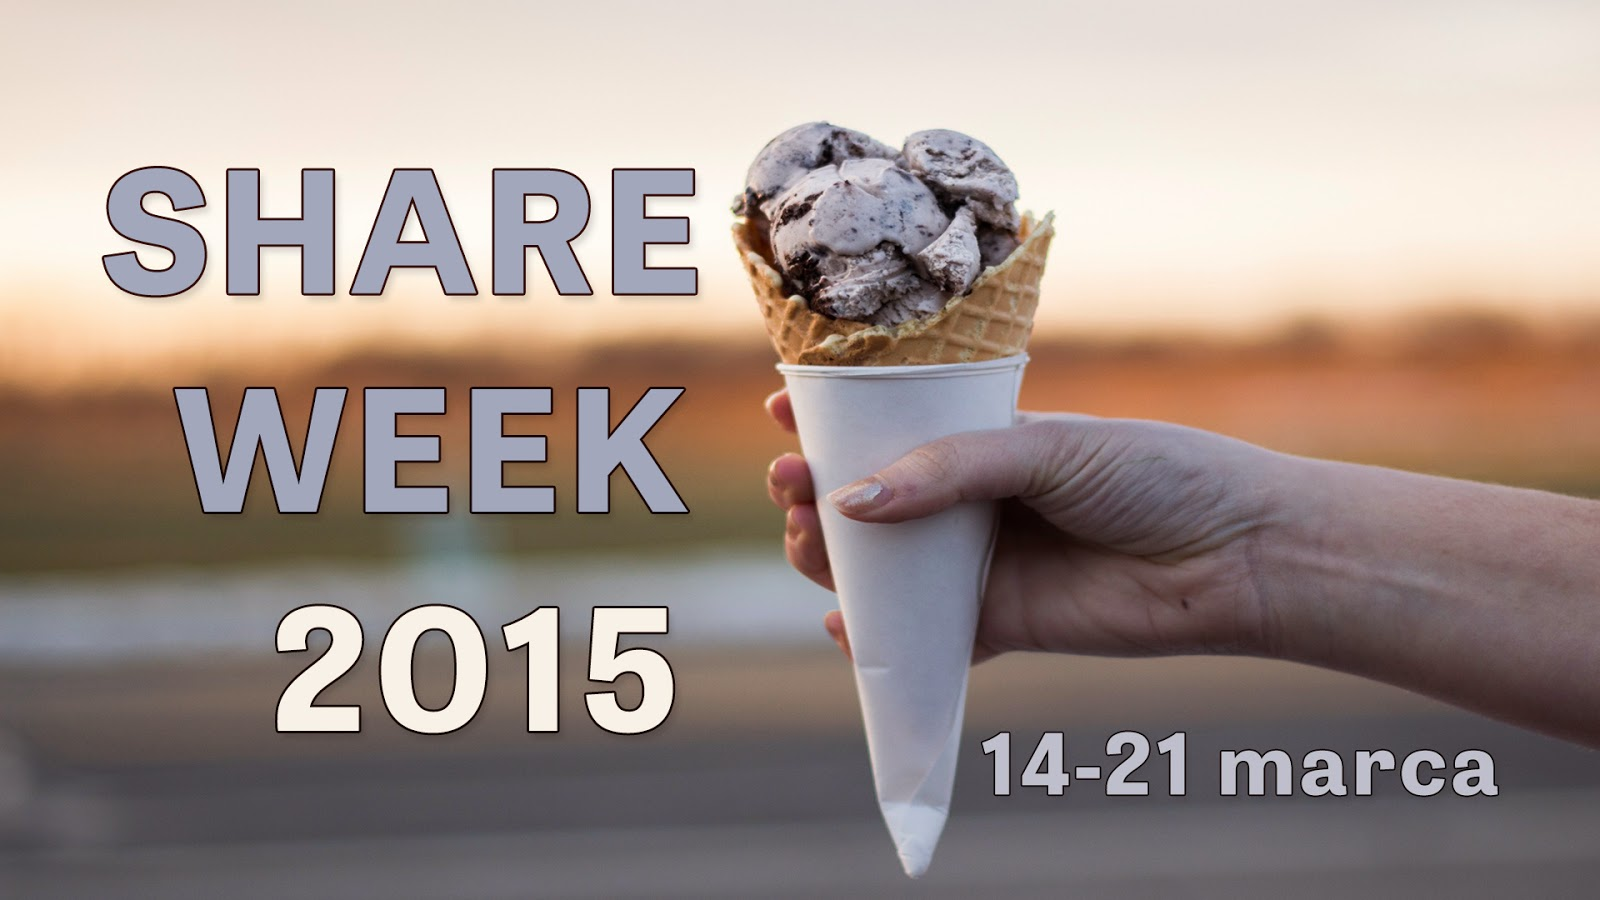 http://bit.ly/ShareWeek2015